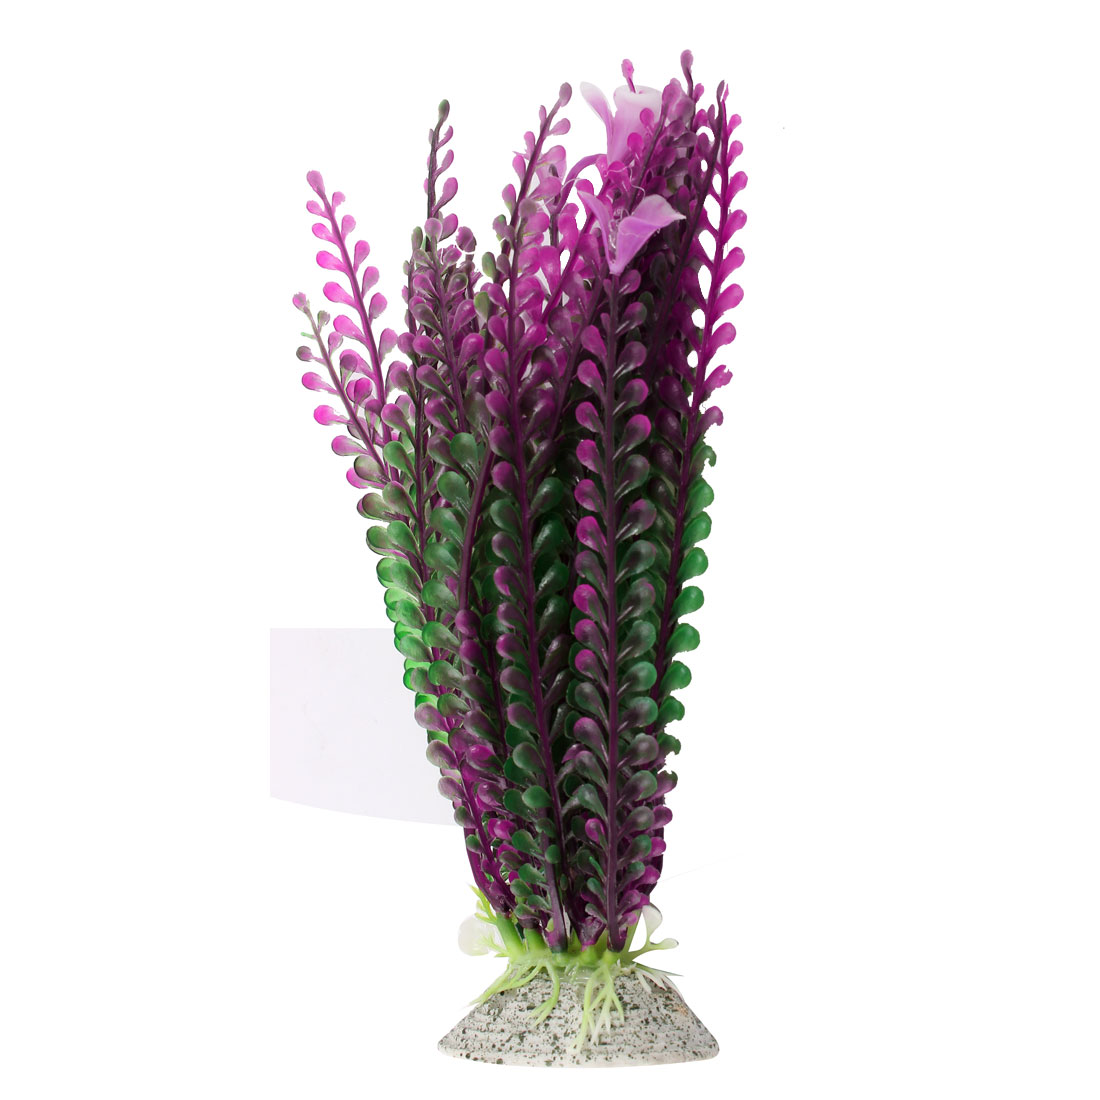 "Aquarium Fish Tank Landscaping Artificial Emulational Underwater Water Plant Grass Decor Green Purple 8"" Height"